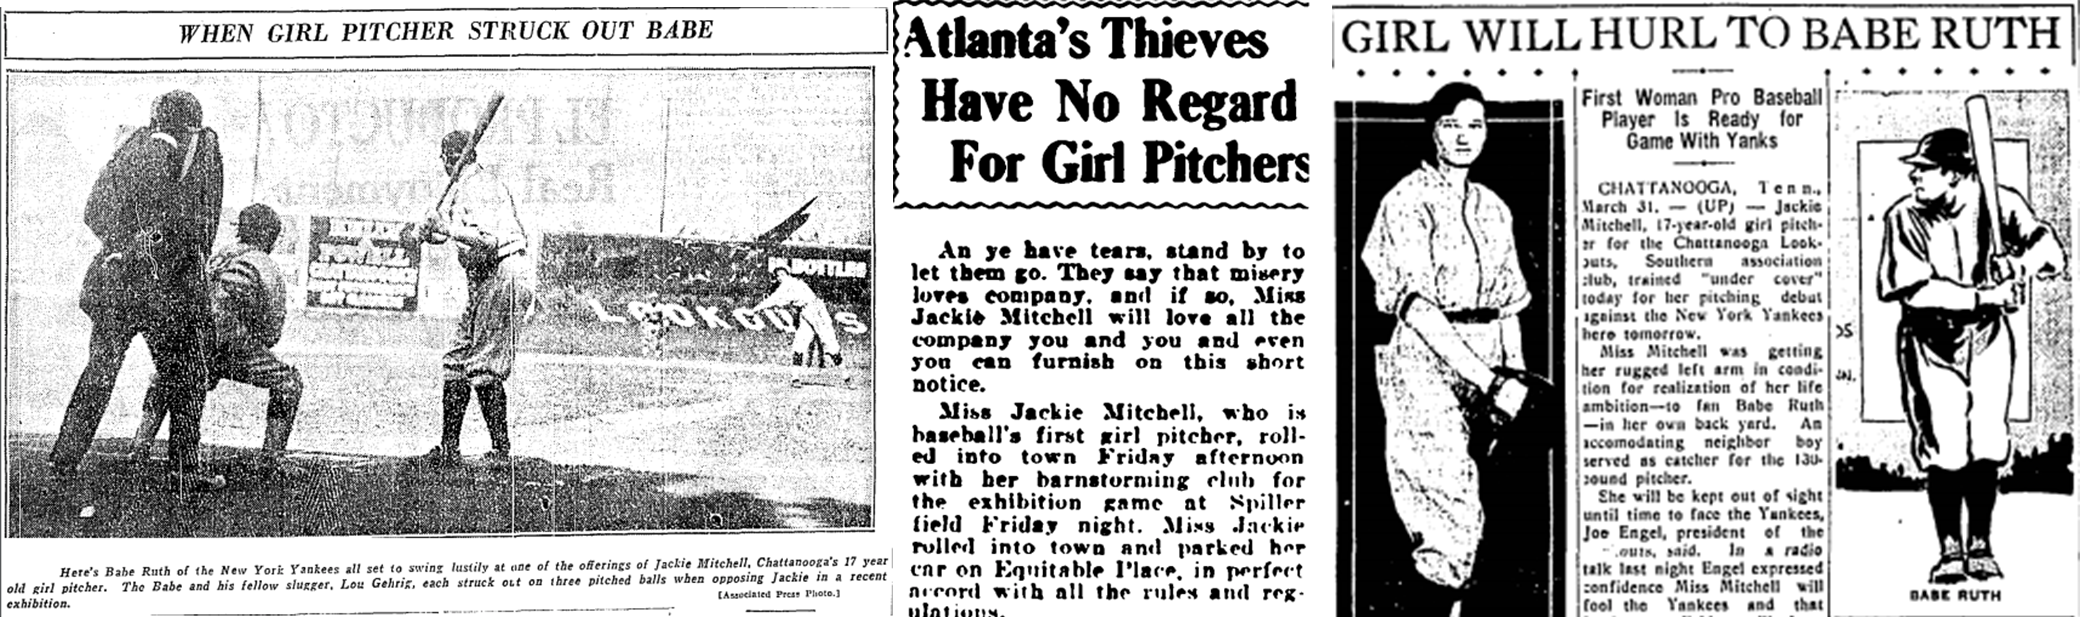 Headlines about Jackie Mitchell from the Chicago Daily Tribune, April 6, 1931; the Atlanta Constitution, June 27, 1931; and the Austin Statesman, March 31, 1931.